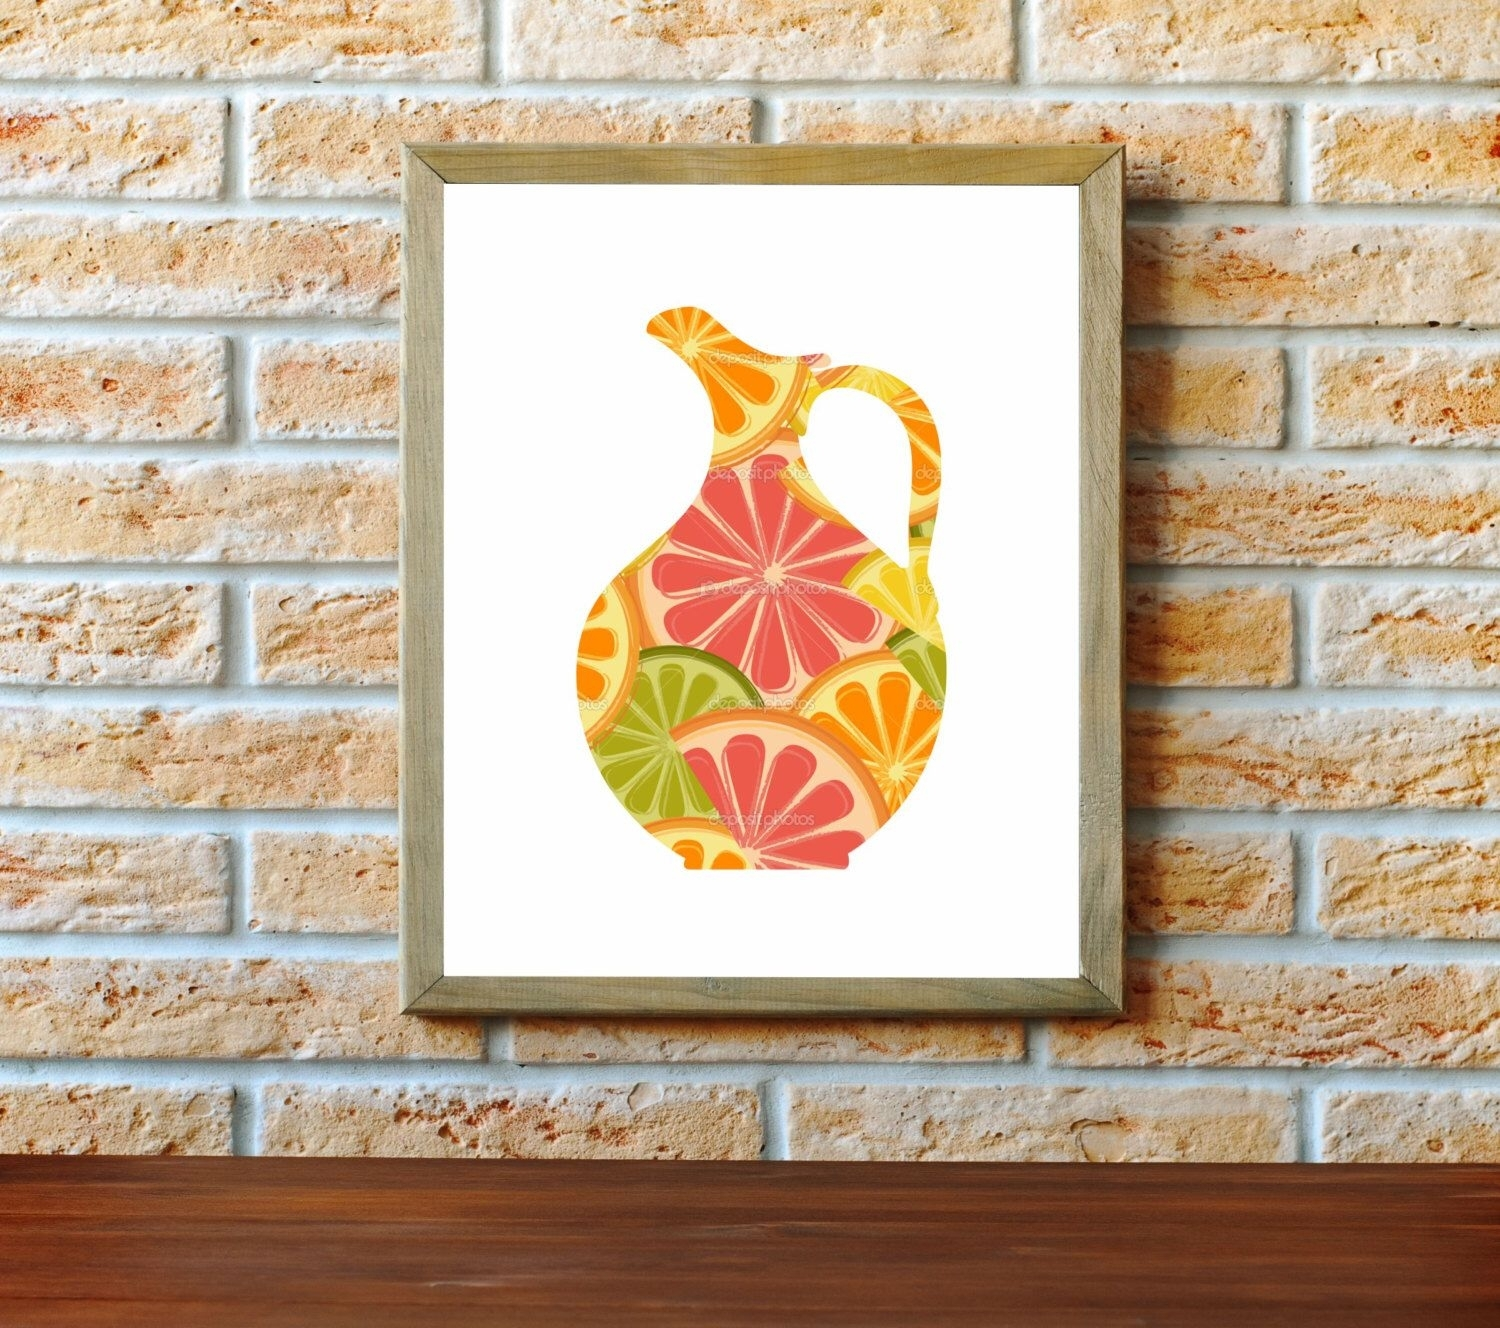 Kitchen Art Print, Dining Wall Decor, Orange Lemon & Lime, Kitchen Throughout Best And Newest Lemon Wall Art (View 16 of 20)